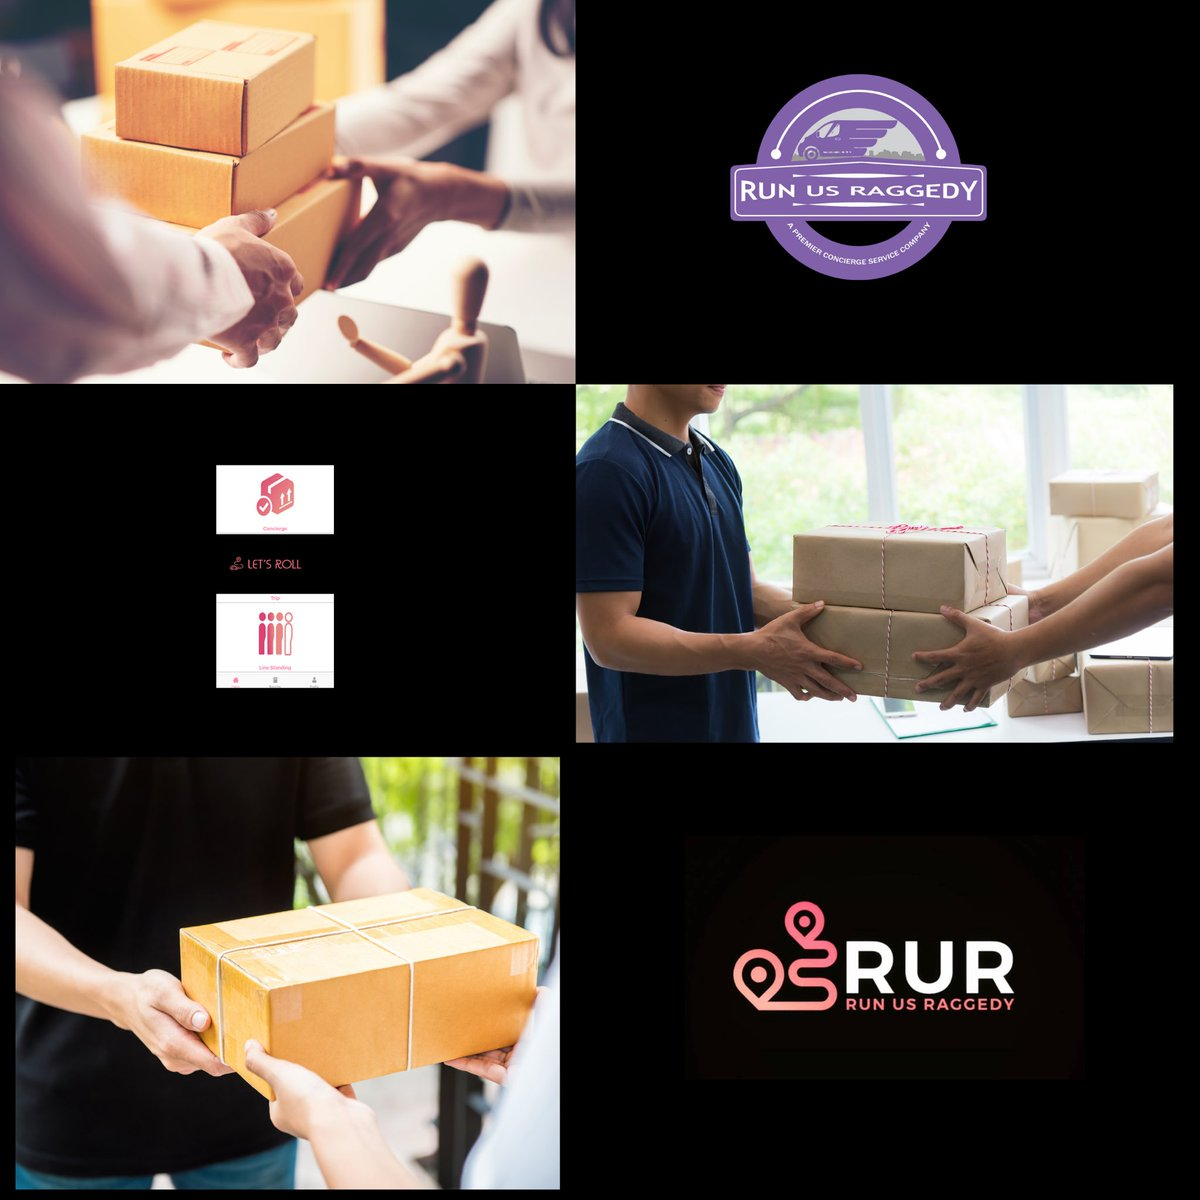 We deliver items under a 100lbs.  Download the app or call today.   Cast Your Errands Relax A Little Live A Lot.  One World   One Community   One App  https://t.co/vrxKOcpsMo  #Technology #WomenInTech #Startup #Business #Innovation #Leadership  #Education #Wealth  #Timemanagement https://t.co/RgVRzq9L3Z